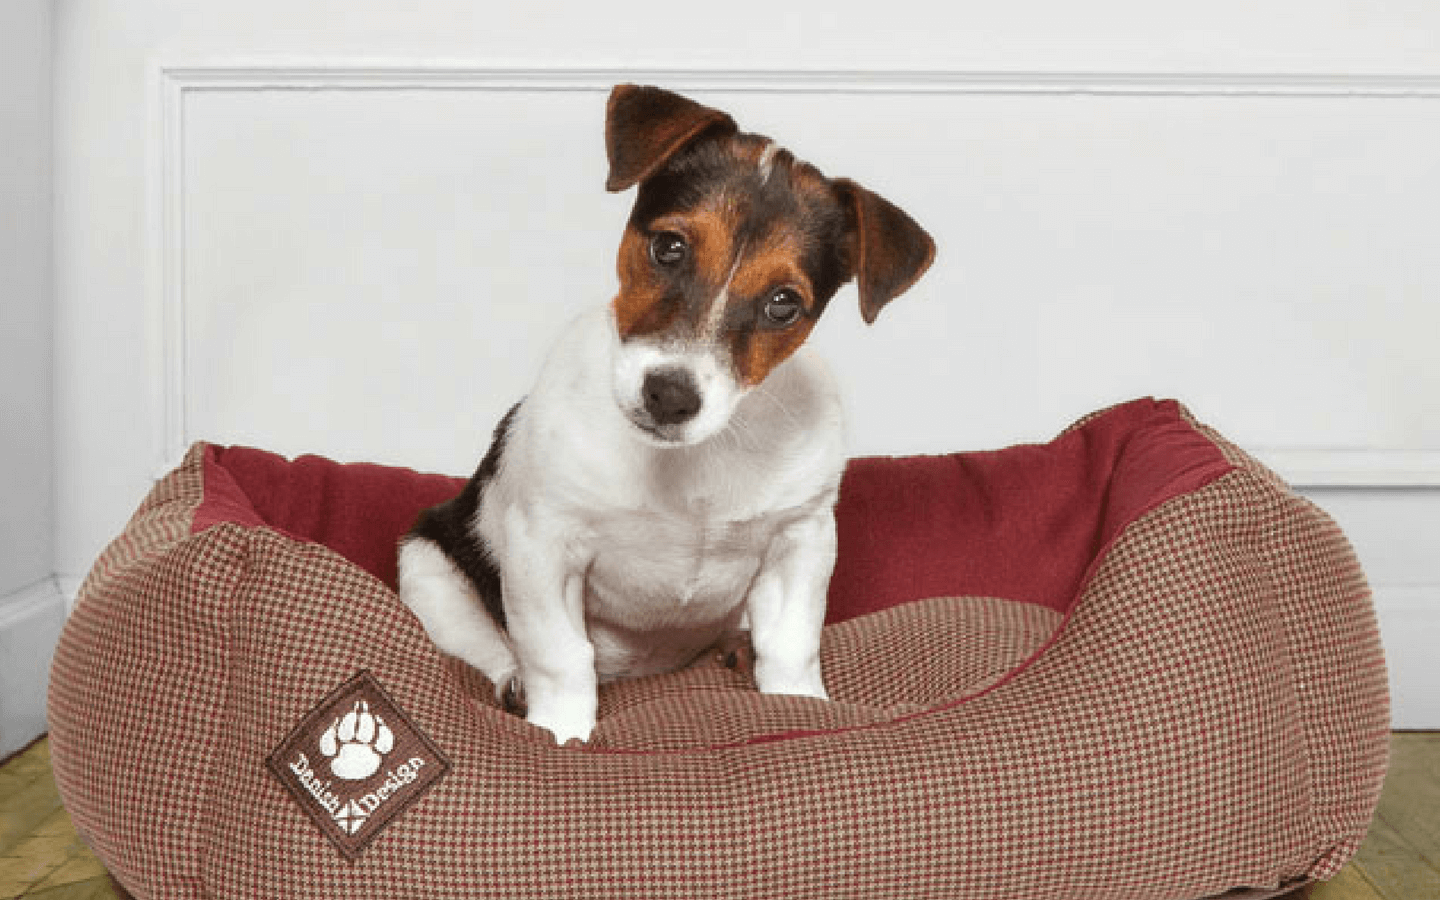 Cute Little Jack Russel Dog Sitting in his Dog Bed